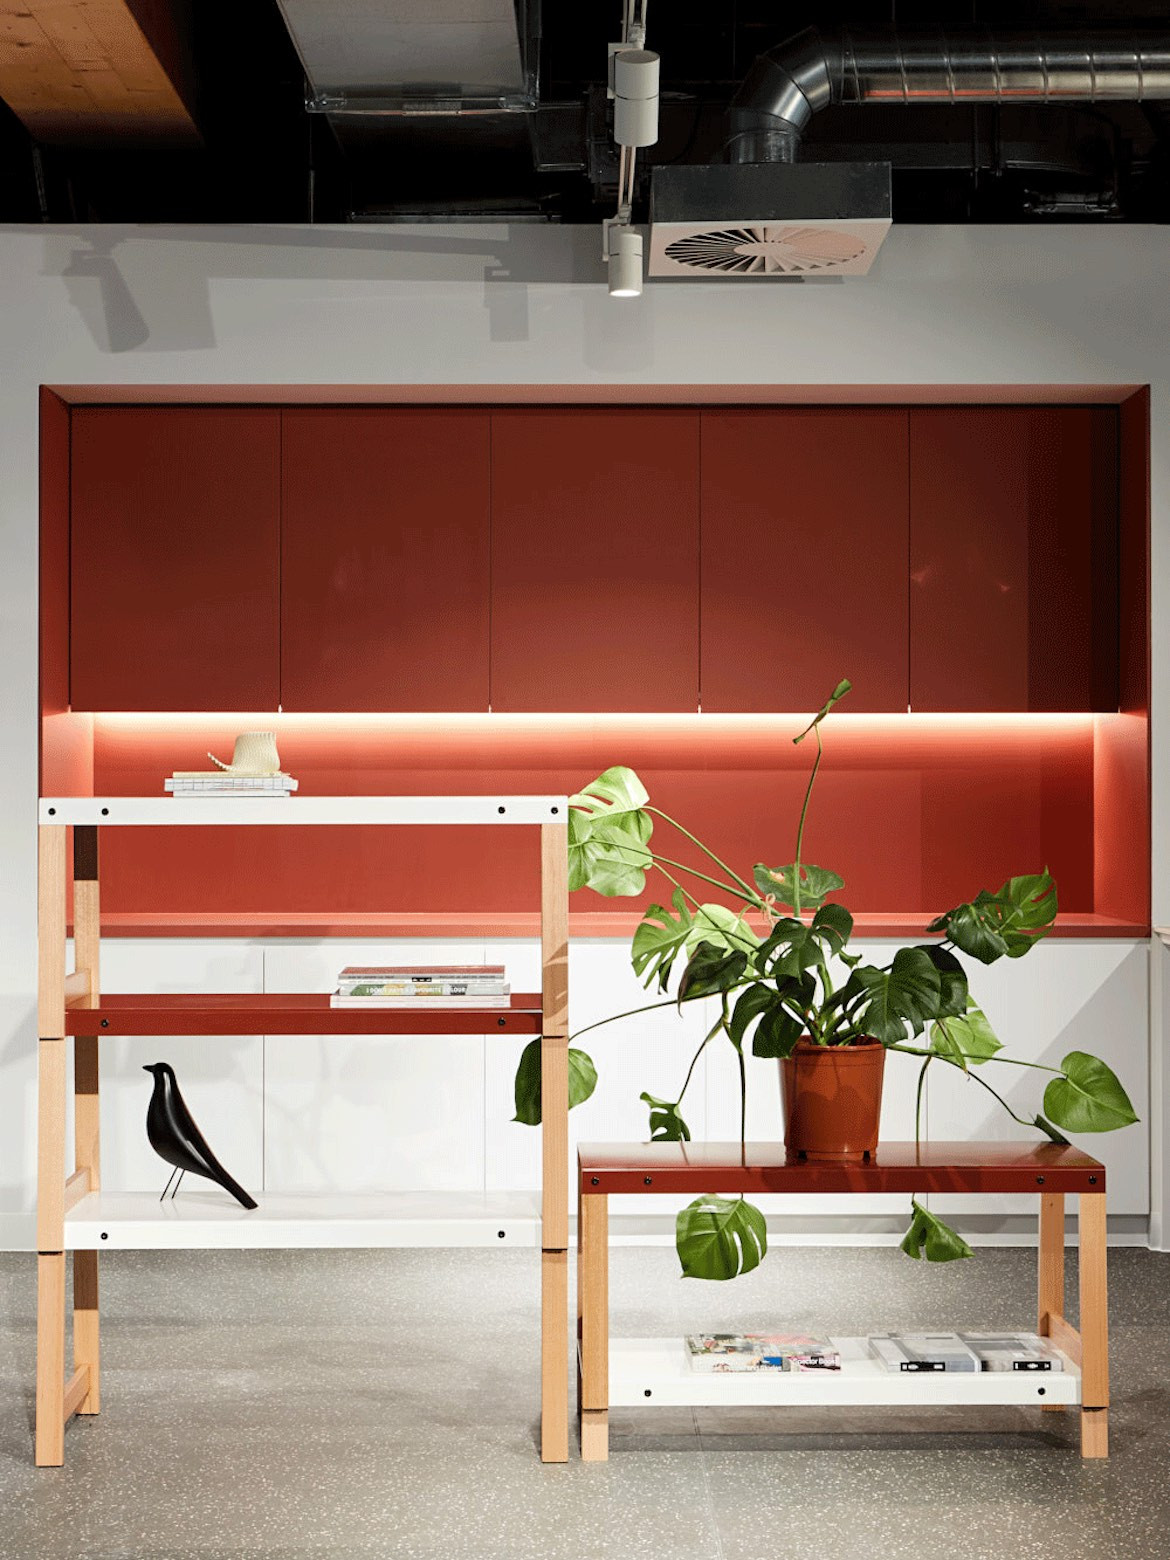 Rearrangeable furnishings in the Architectus' Melbourne Entrepreneurial Centre office